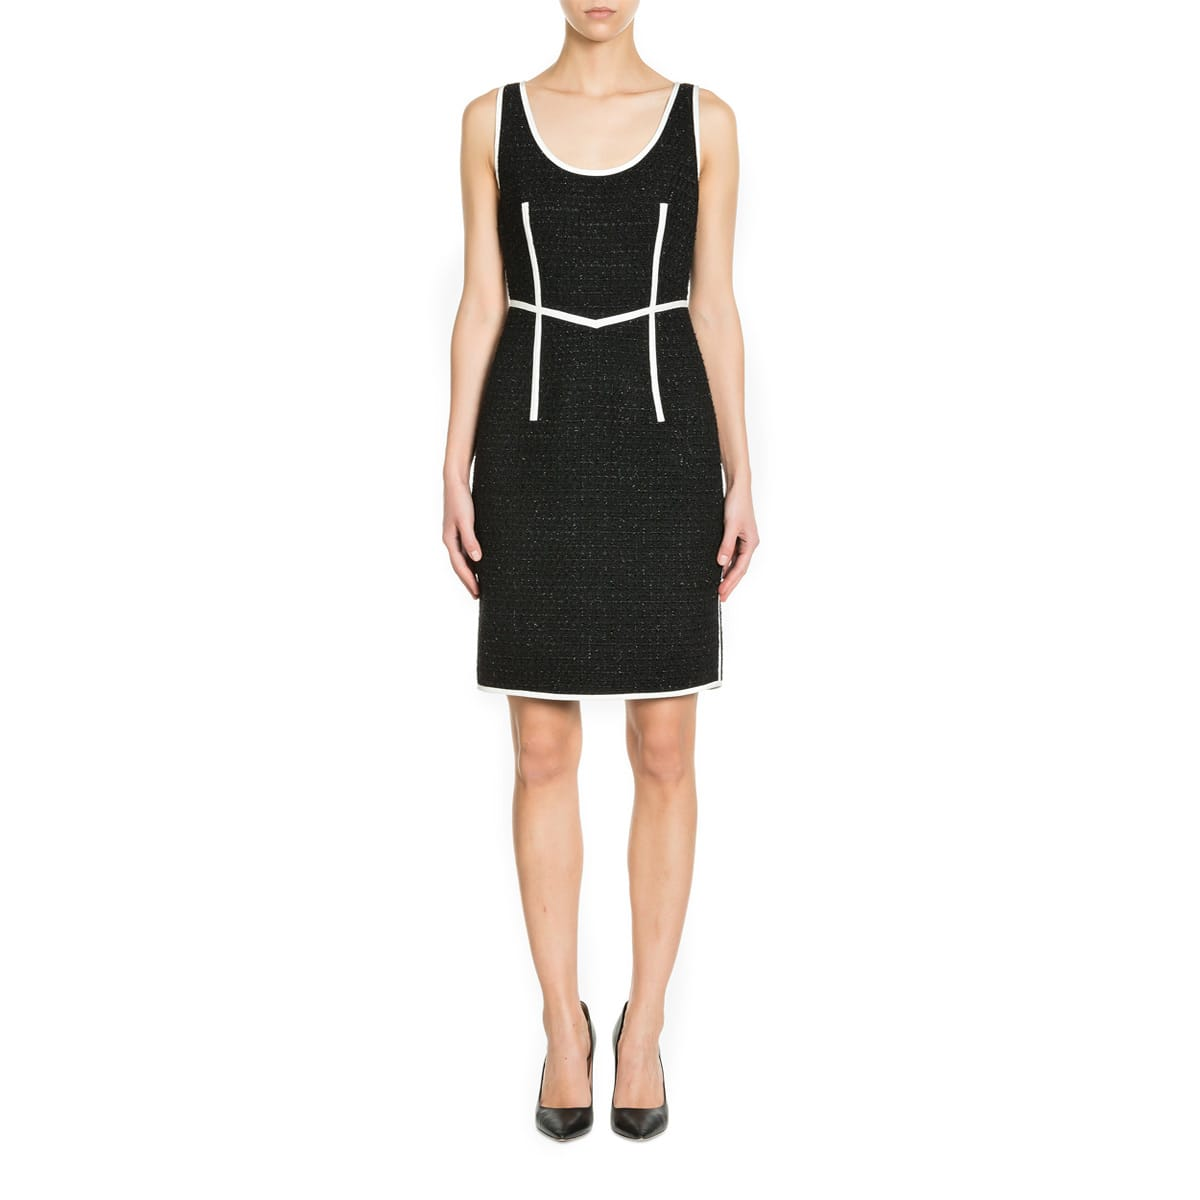 Boutique Moschino Blend Virgin Wool Dress